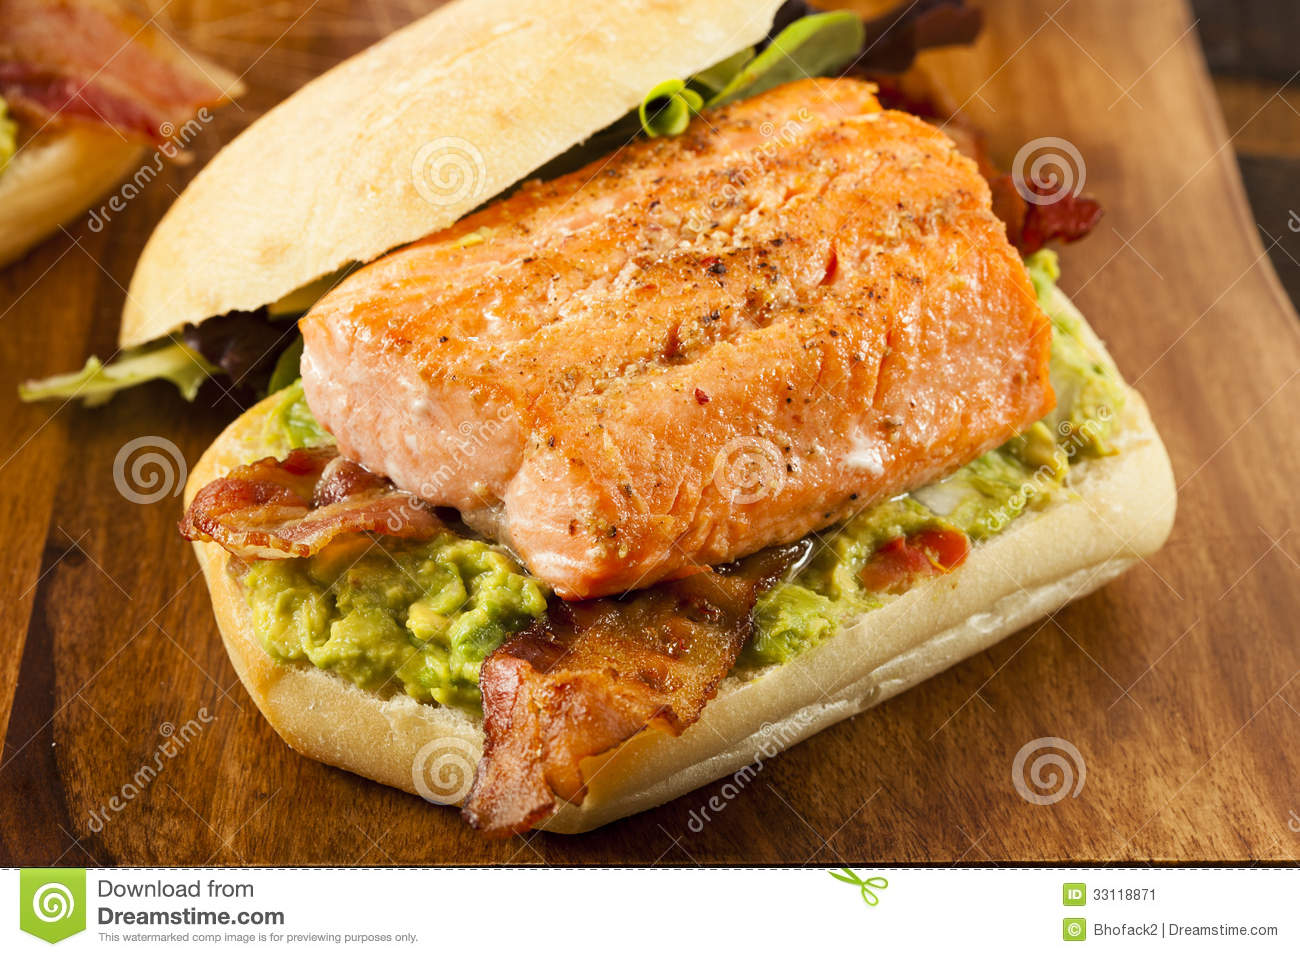 Grilled Salmon Sandwich With Bacon And Guacamole Stock Image - Image ...